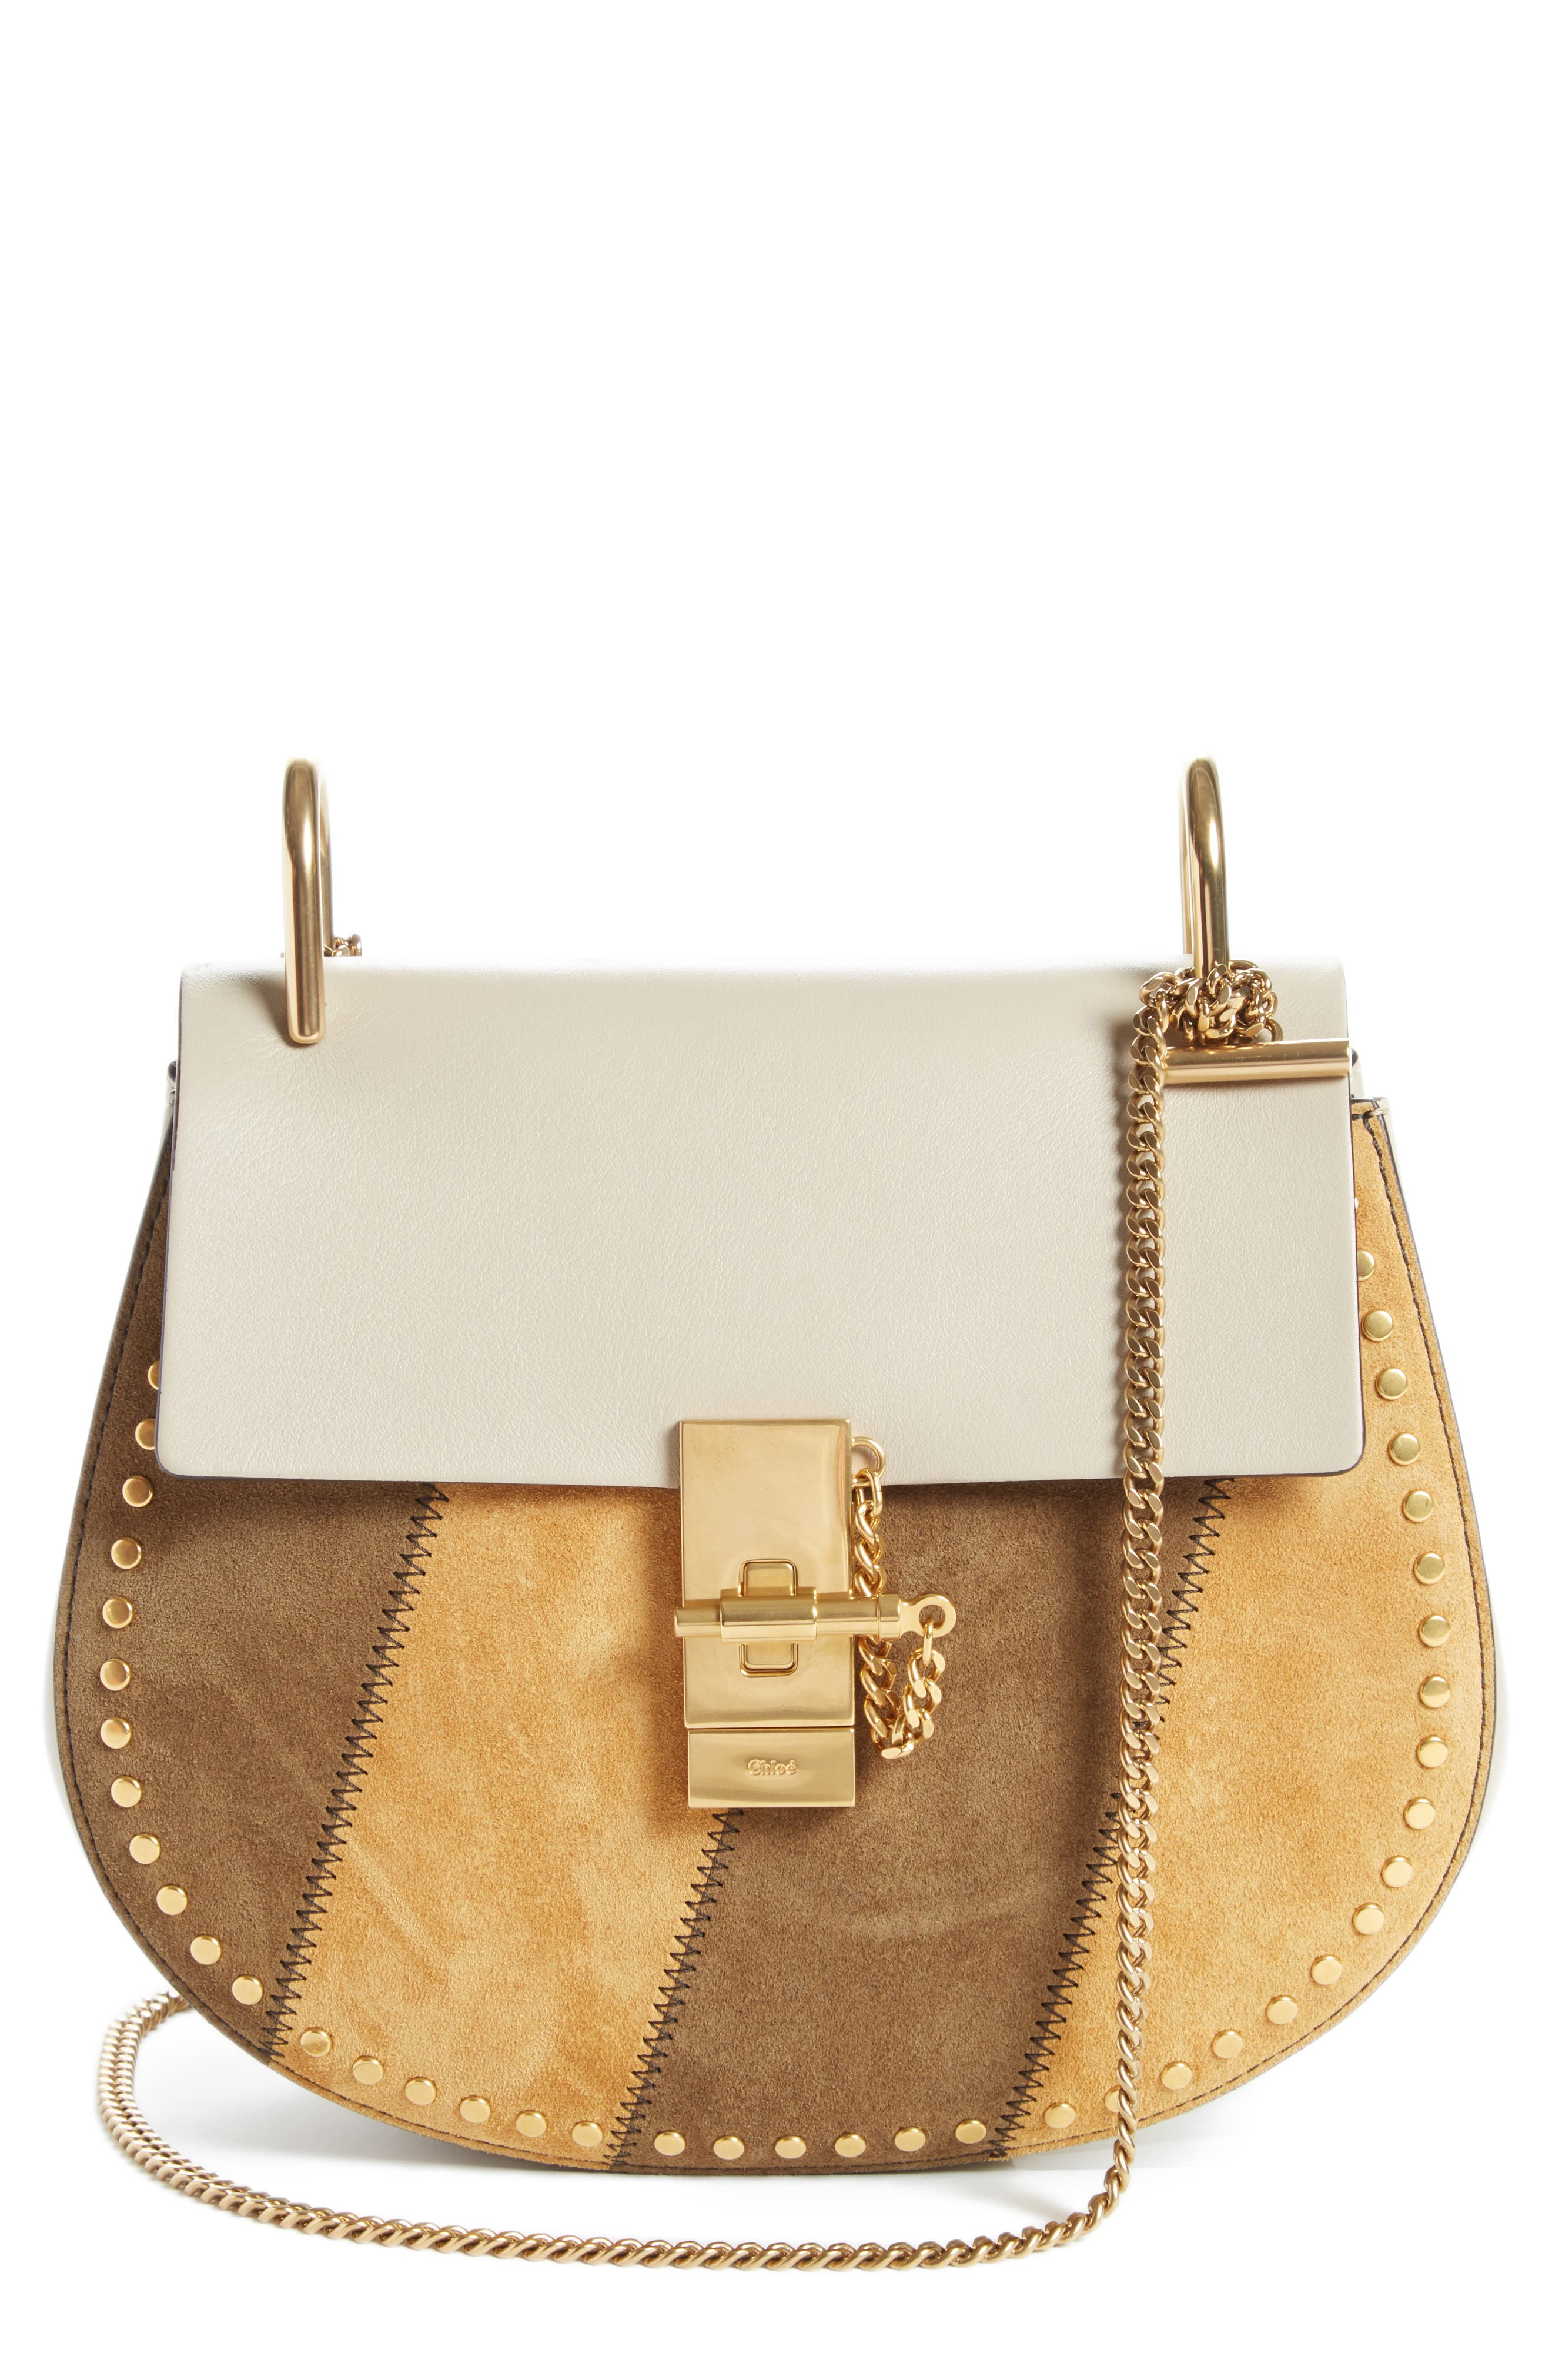 Alternate Image 1 Selected - Chloé Small Drew Leather Shoulder Bag